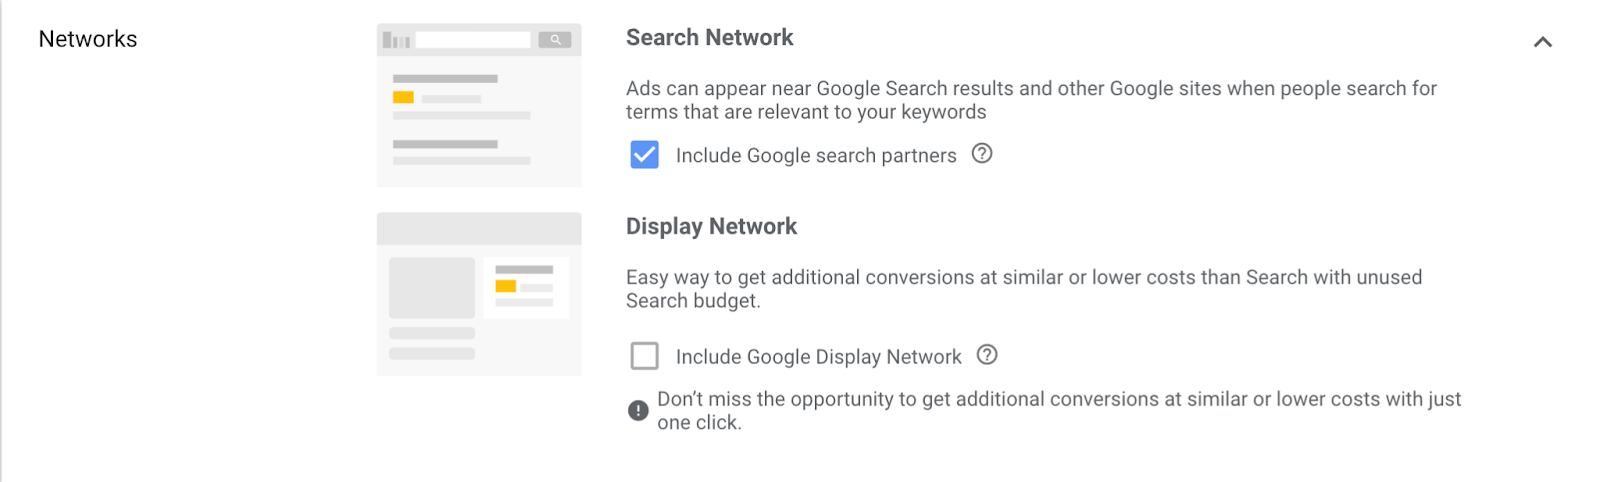 Google Ads For Therapists: 7 Steps To Book More Clients 3